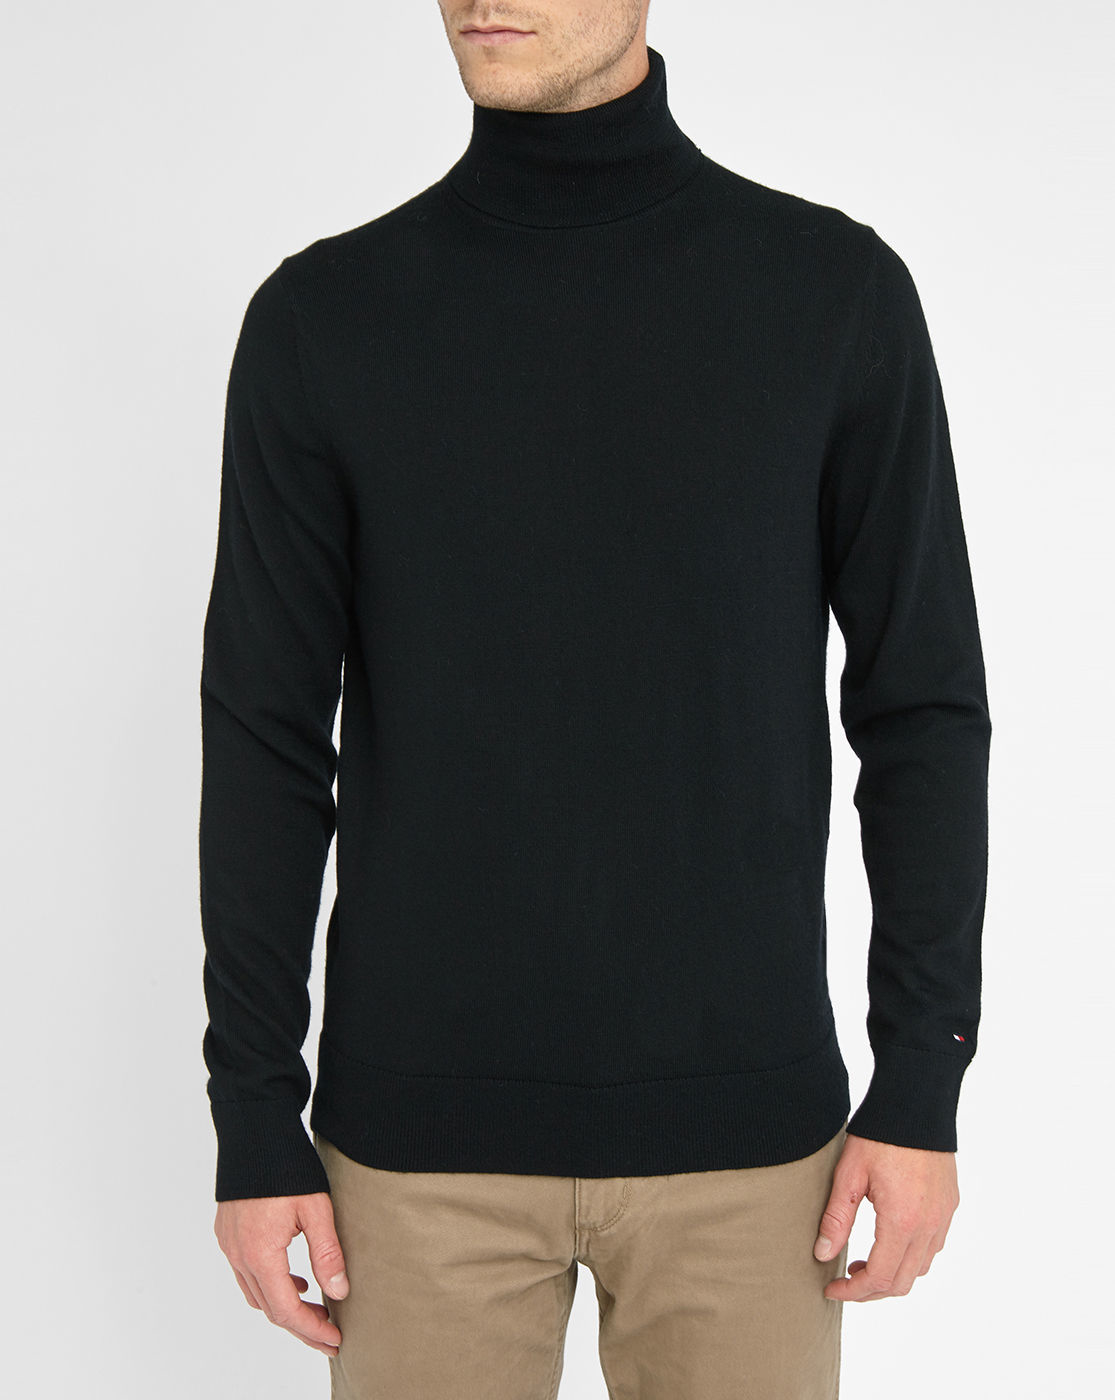 Polo sweaters. Polo neck sweaters are called rollneck, skivvy, or turtleneck in various parts of the world. The close-fit of the high neck is wearable as is, or folded down for comfort and a varied style. The formed collar protects the neck from winds and cold weather.